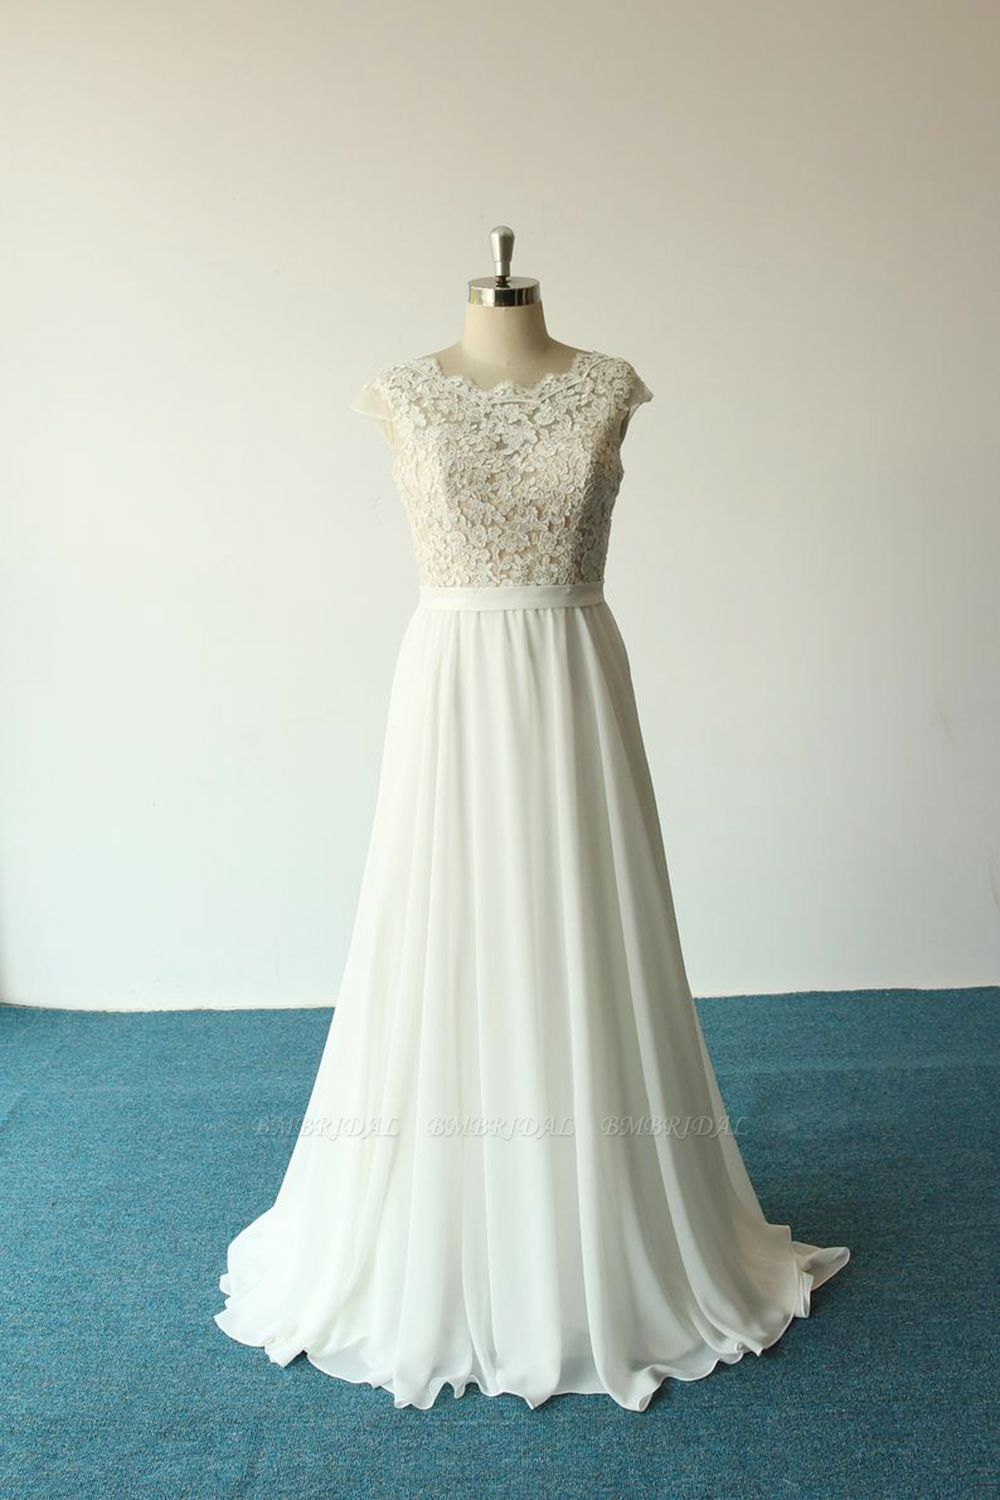 Elegant A-line White Chiffon Wedding Dress Sleeveless Appliques Bridal Gowns On Sale